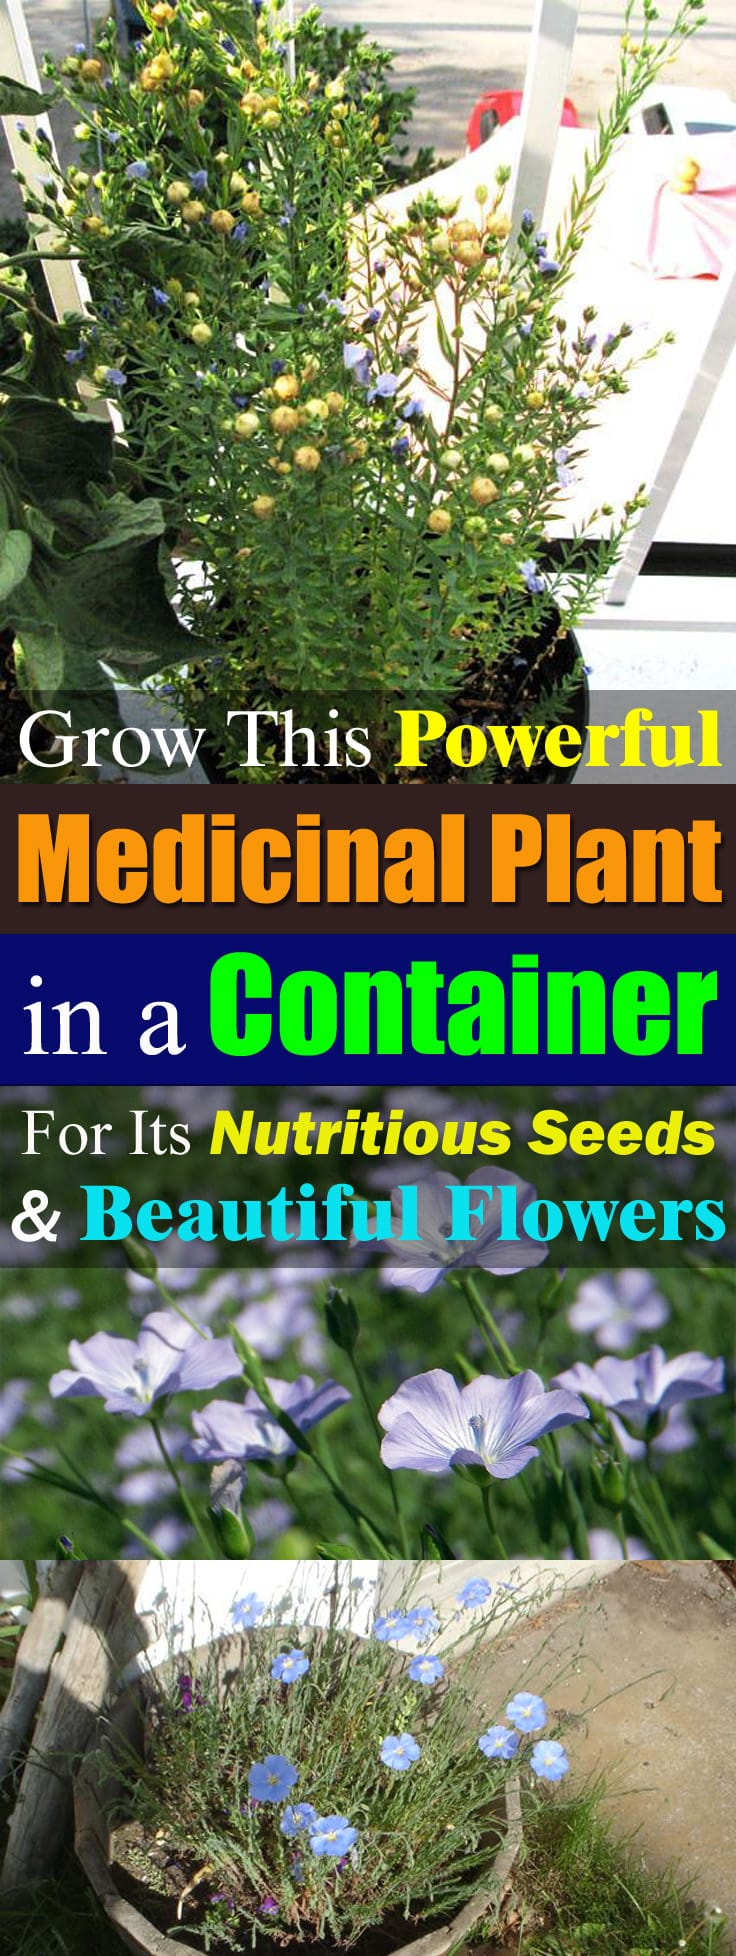 Not only for the Flax seeds, but you can also grow Flax for its beautiful blue flowers. Growing this plant is not difficult in pots!